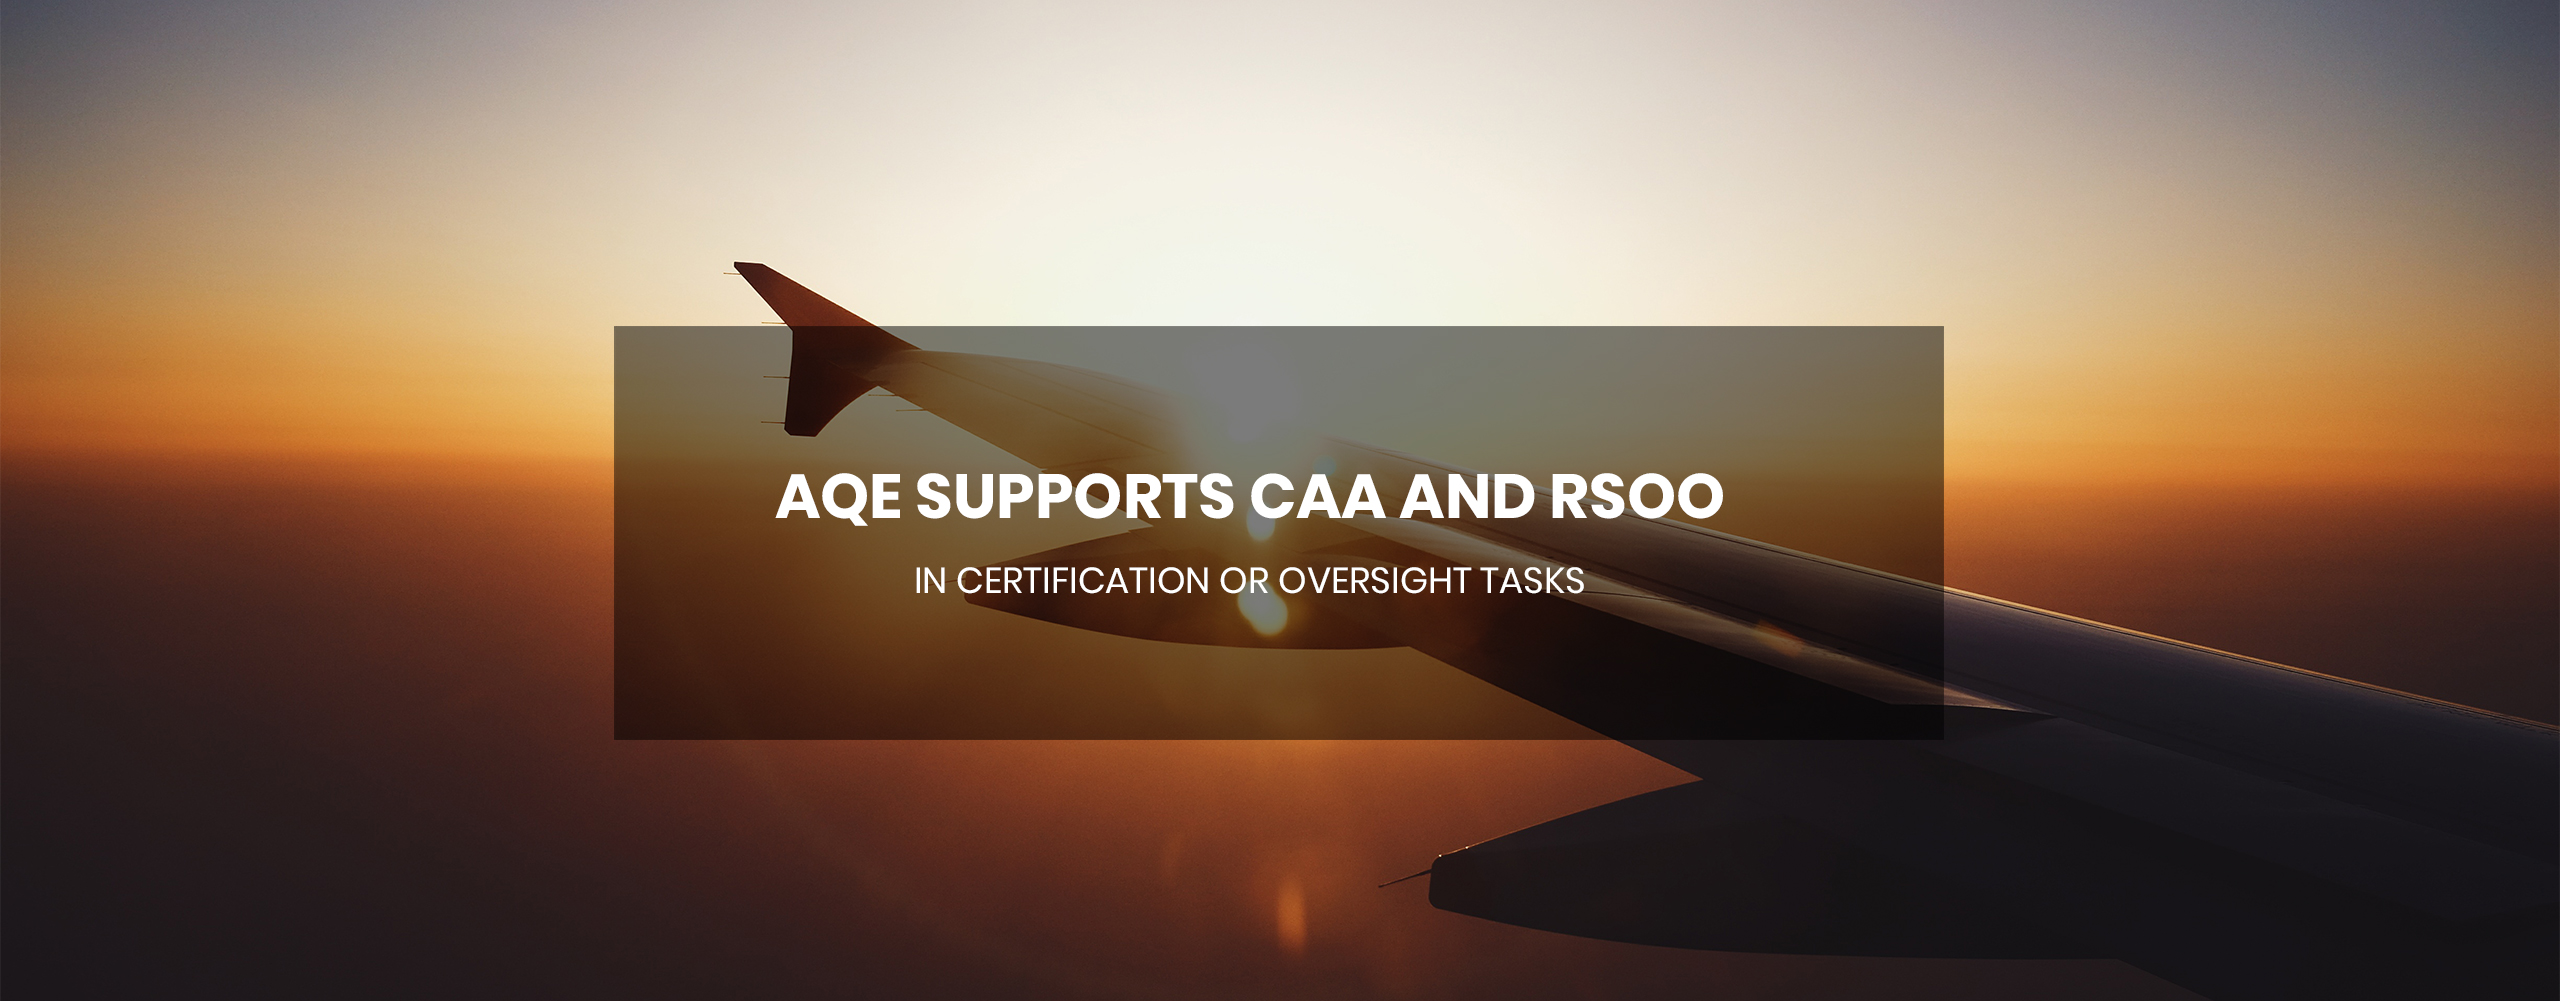 AQE supports CAA and RSOO in certification or oversight tasks